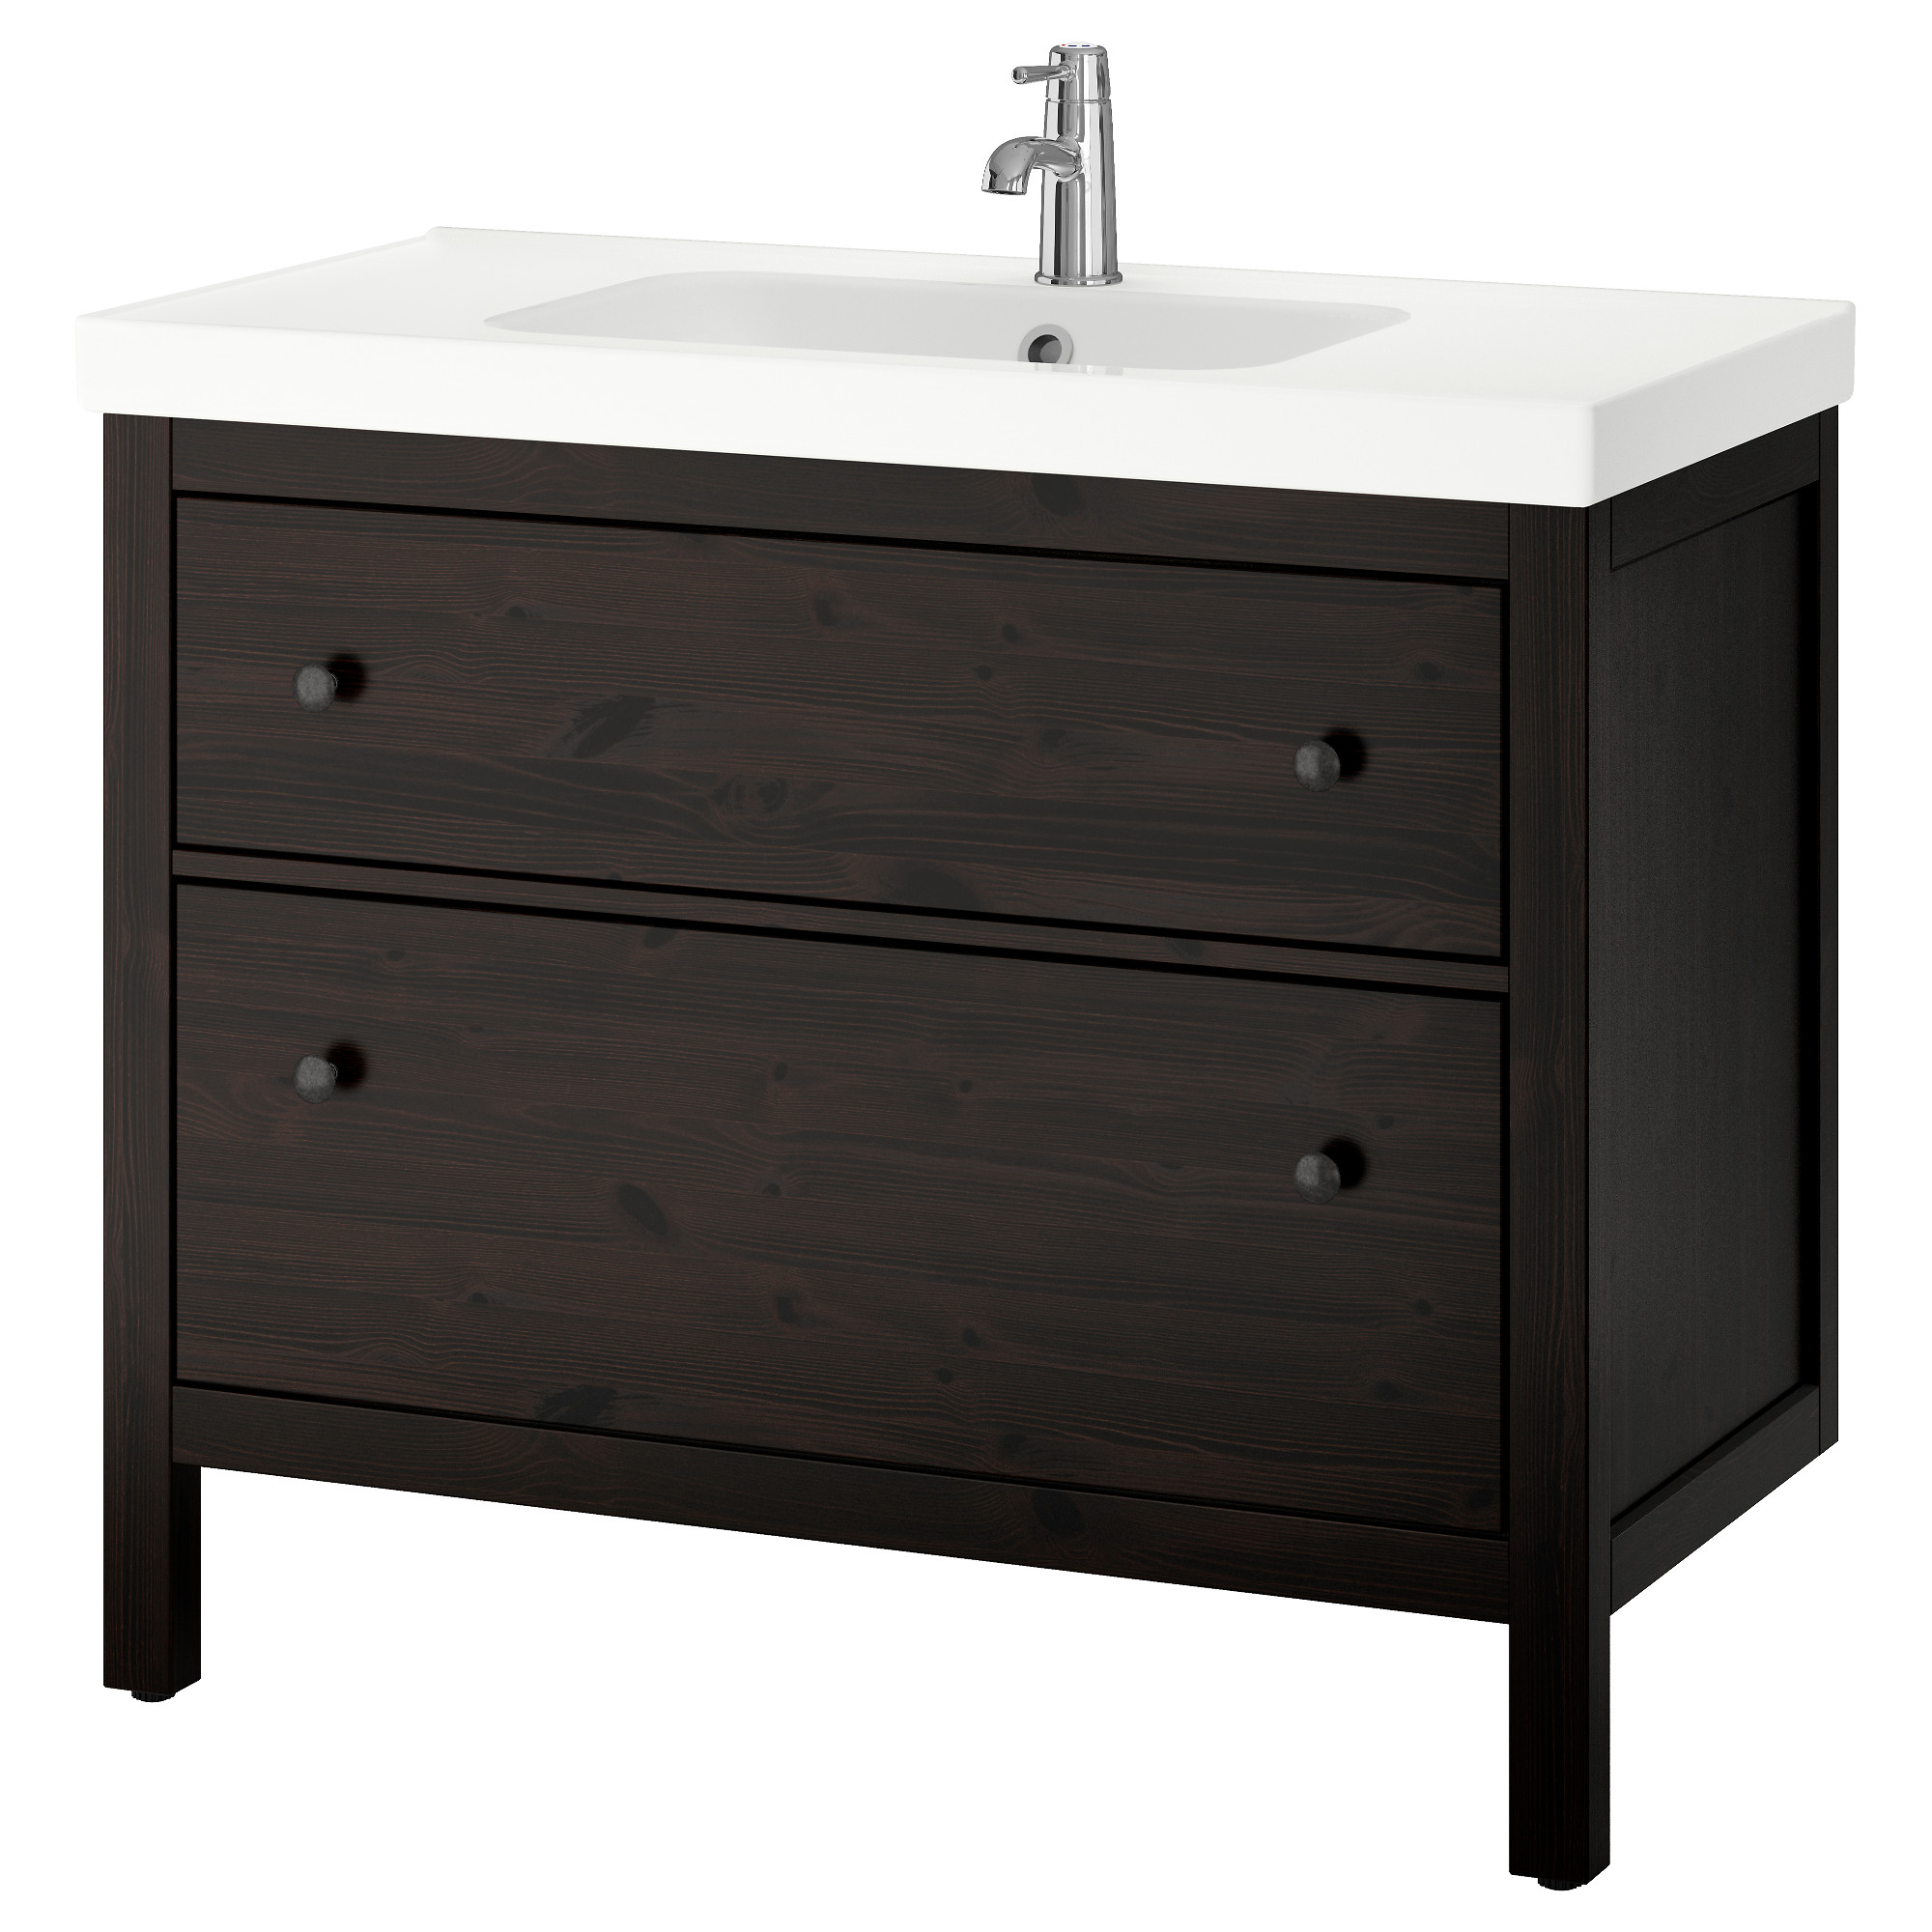 Bathroom vanity basin - Hemnes Odensvik Sink Cabinet With 2 Drawers Black Brown Stain Width 40